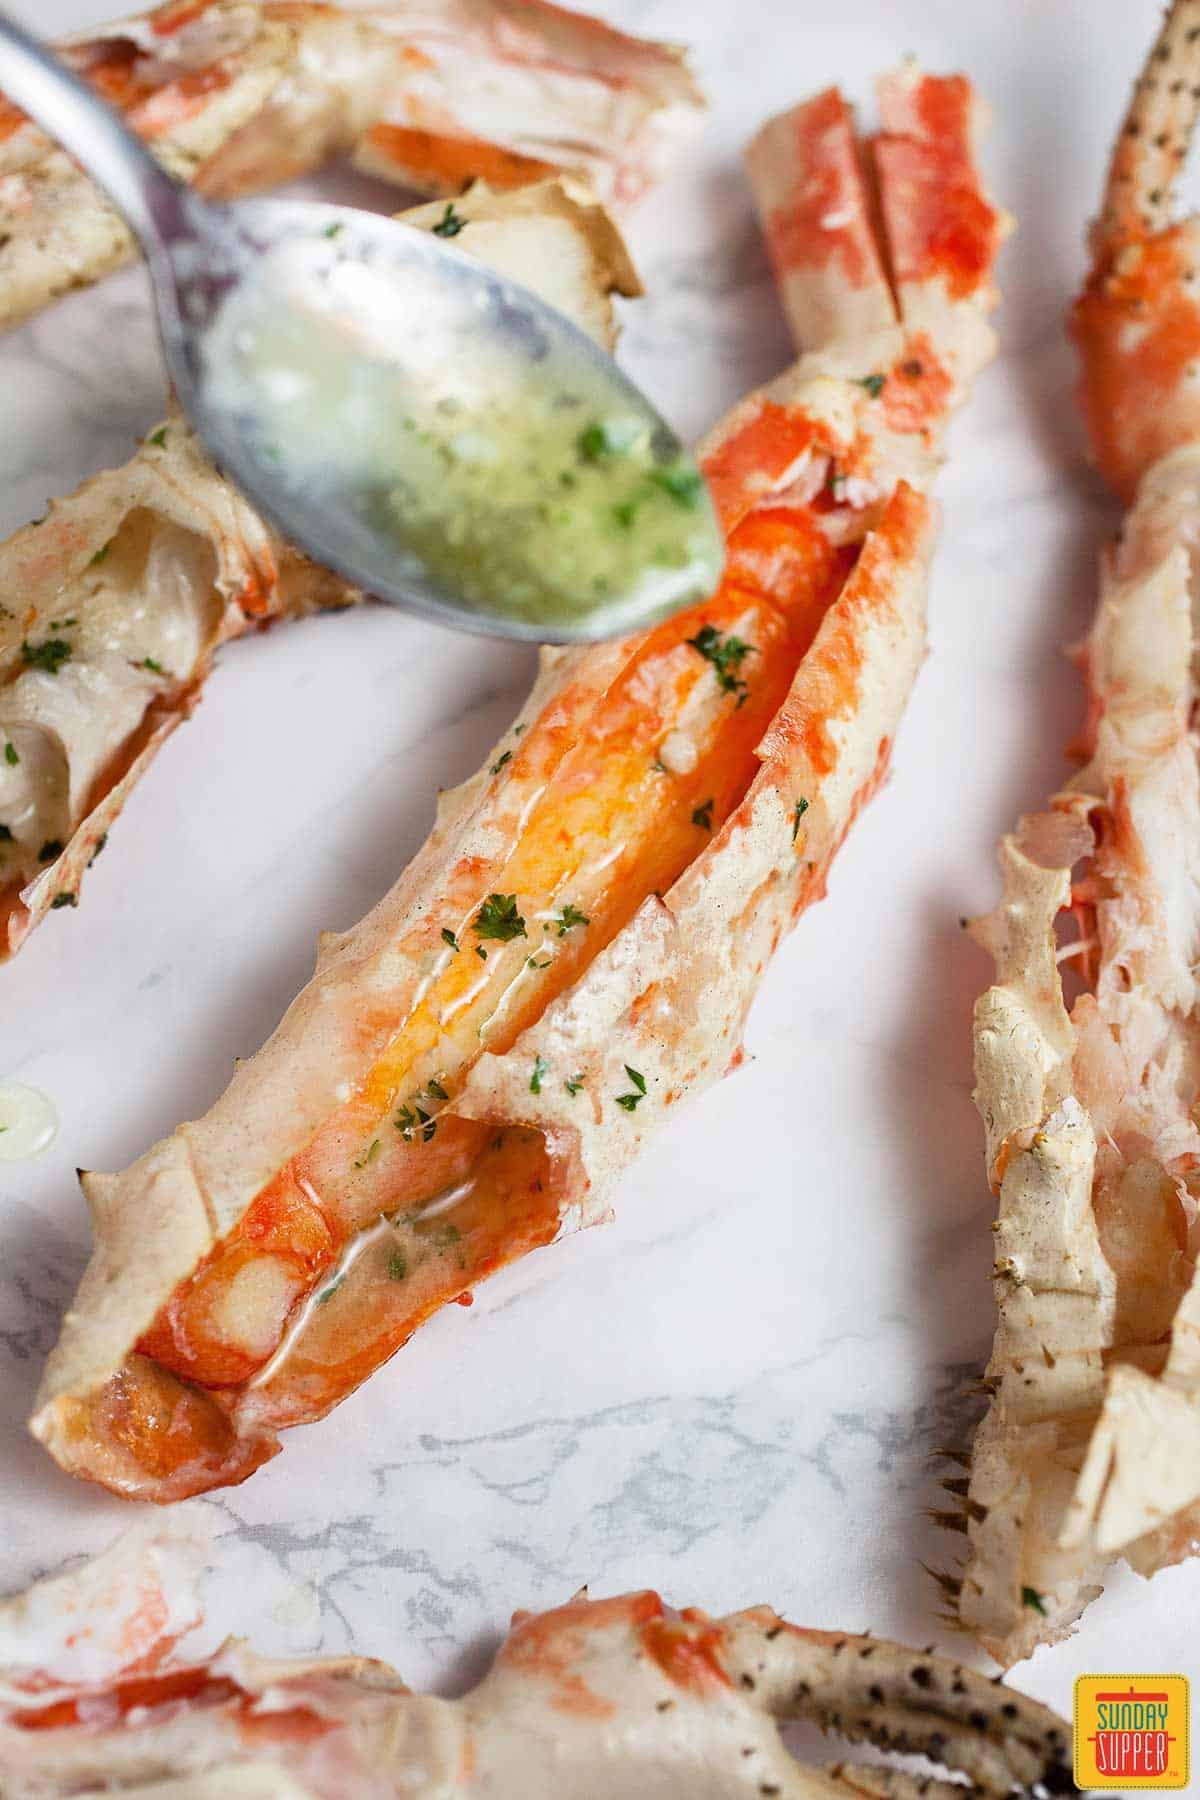 Pouring garlic butter sauce onto grilled king crab legs